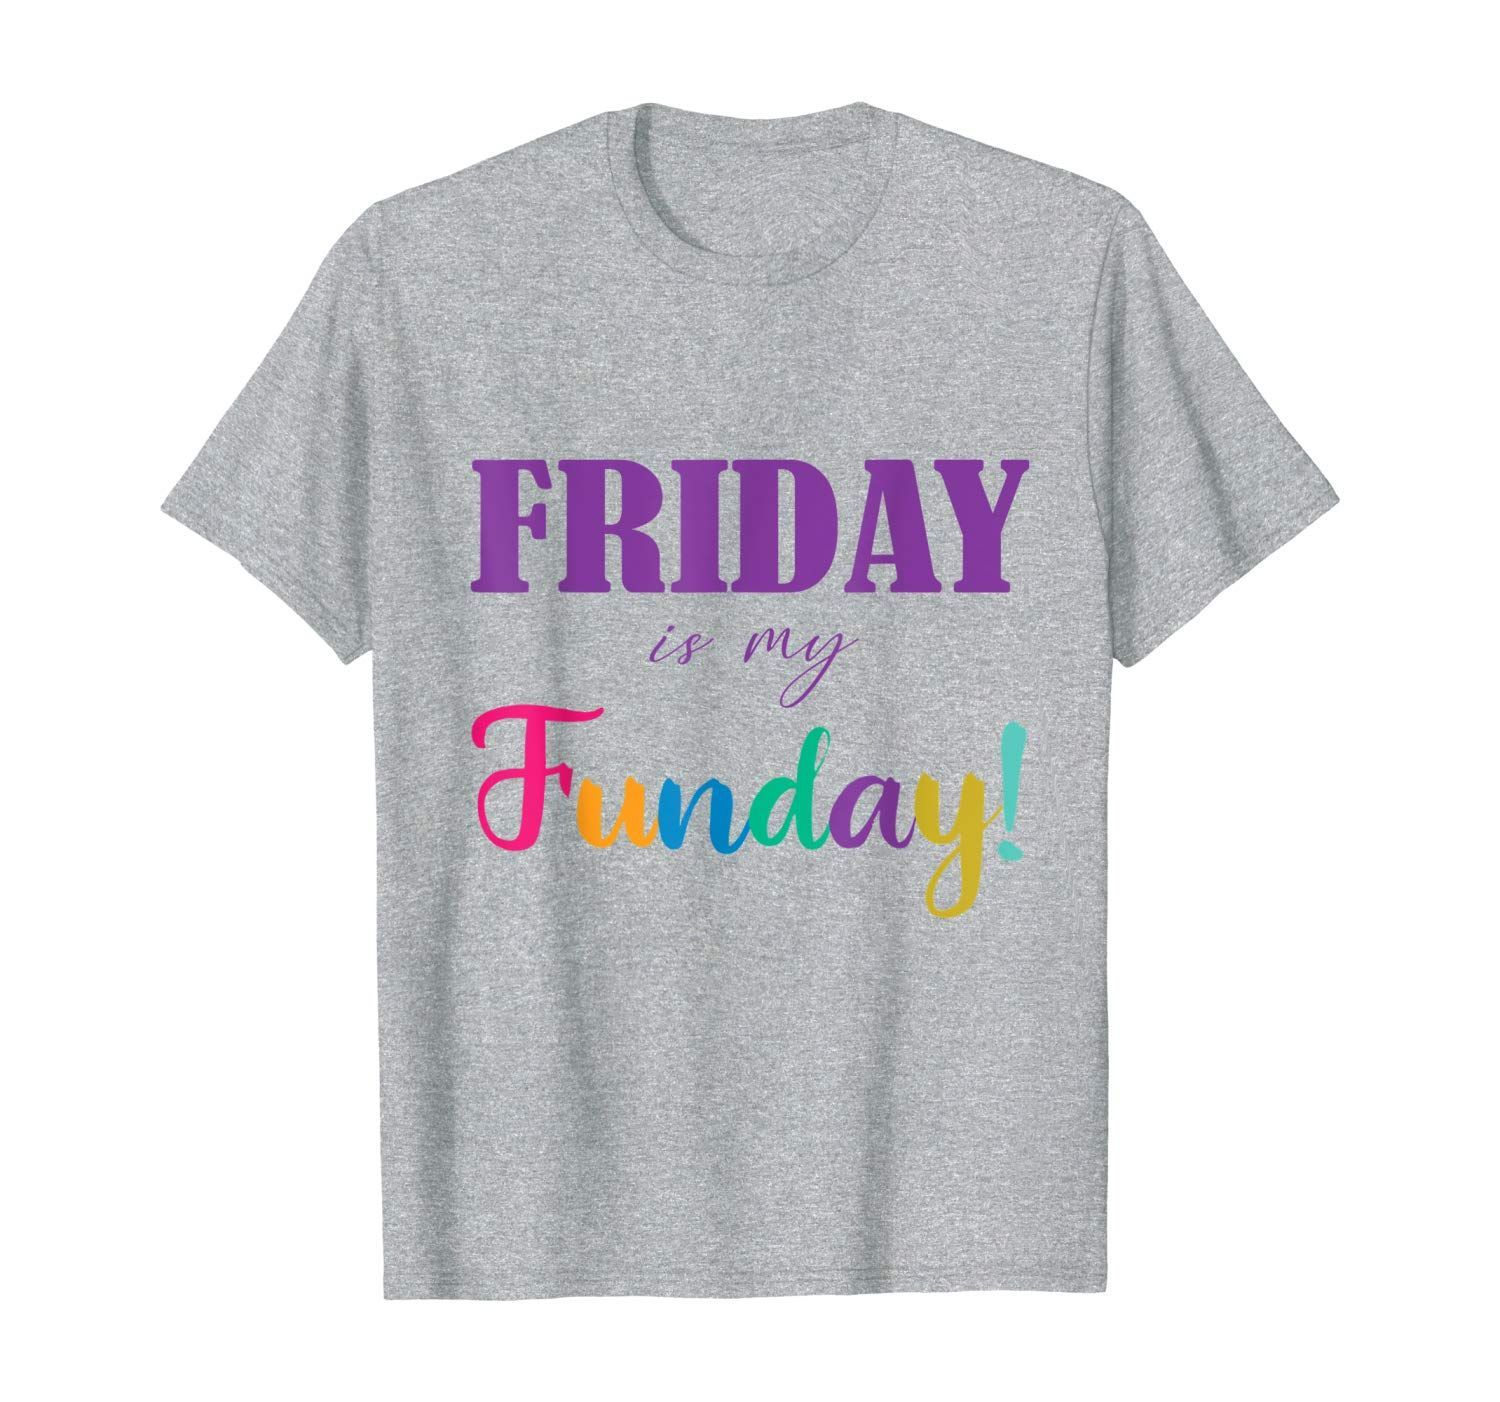 Friday Funday Tees #fridayfunday Friday Funday Tees #fridayfunday